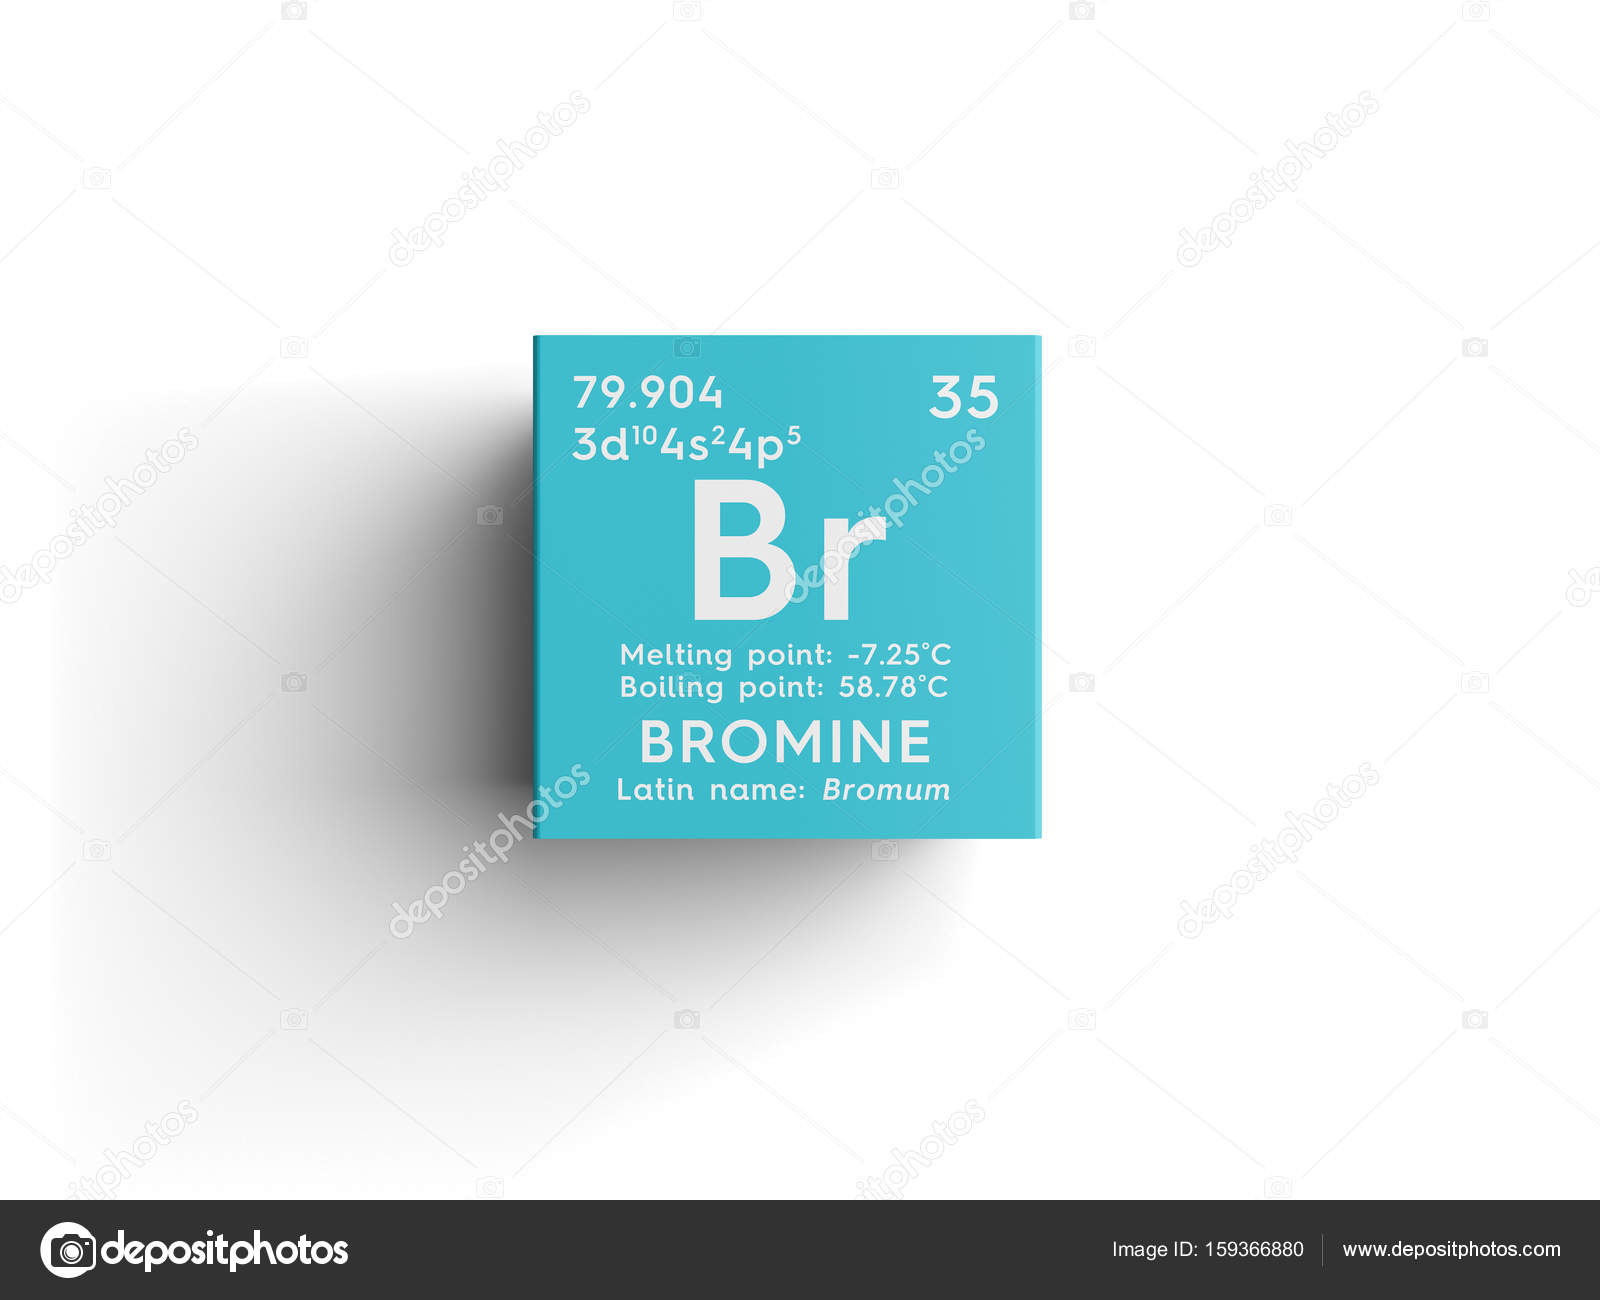 Bromine bromum halogens chemical element of mendeleevs periodic bromine bromum halogens chemical element of mendeleevs periodic table bromine in square cube creative concept photo by sanches812 buycottarizona Choice Image